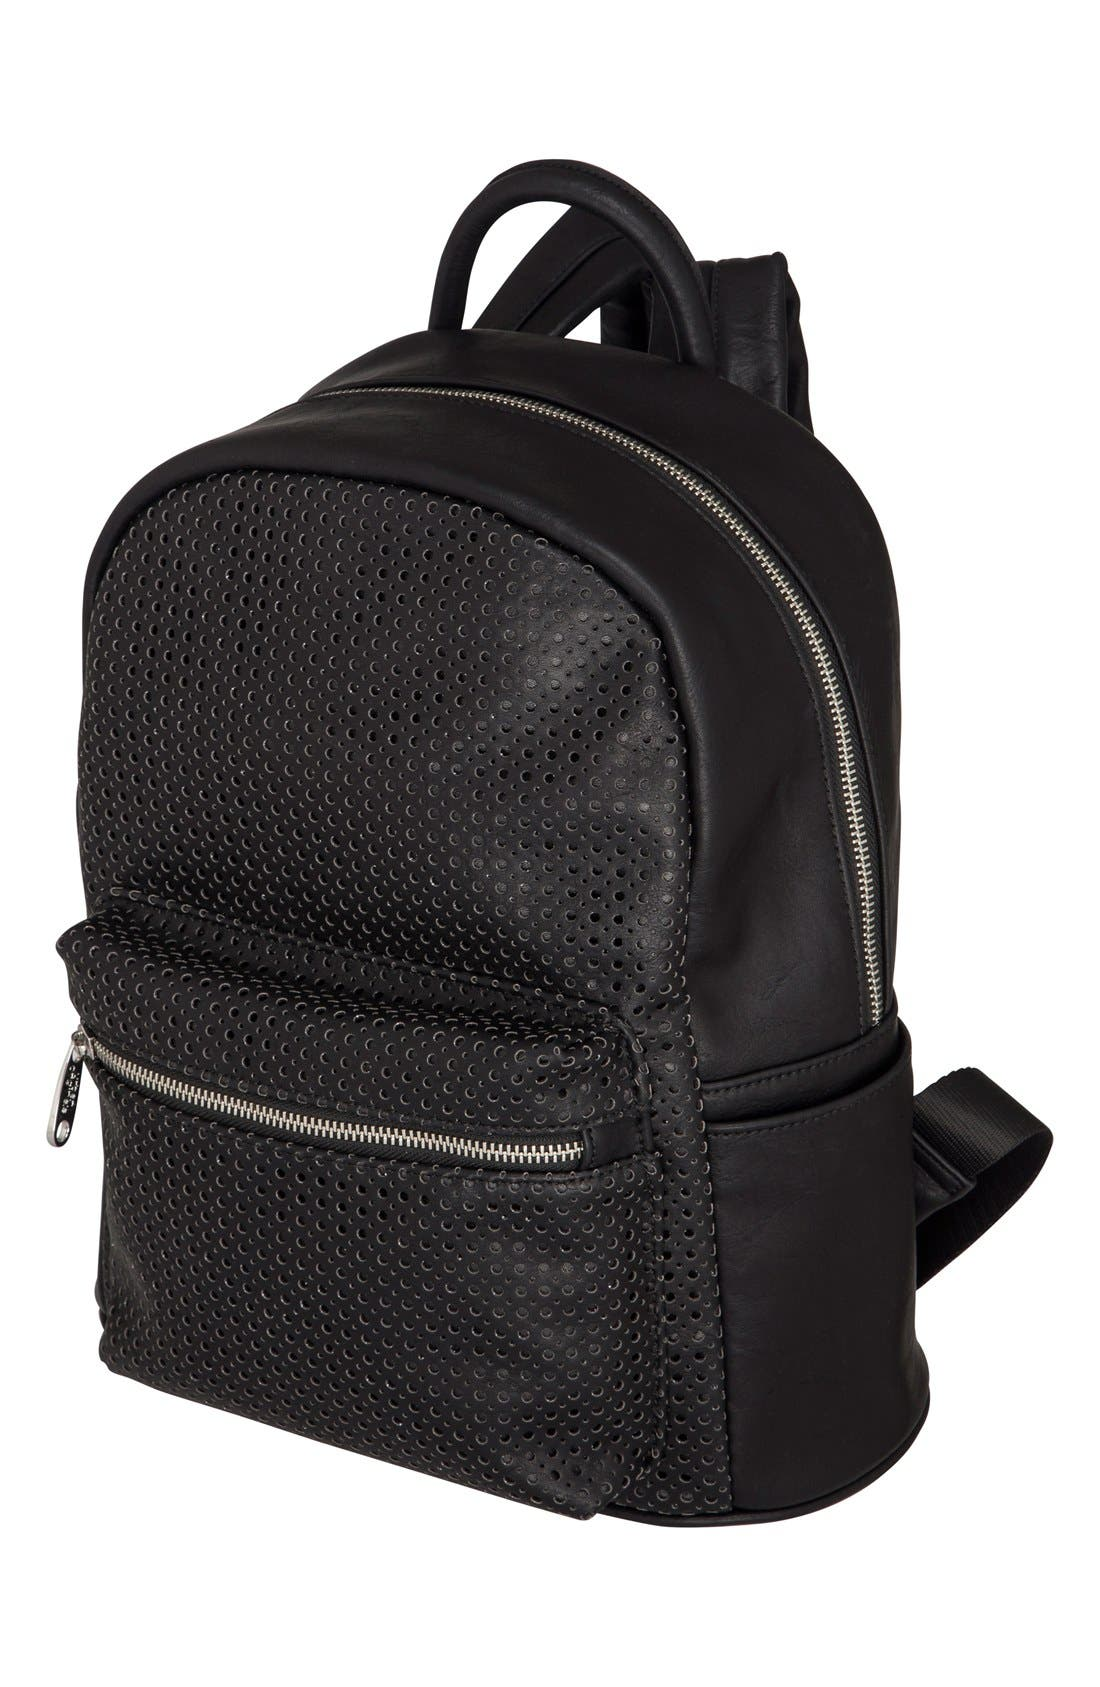 Alternate Image 2  - Urban Originals 'Lola' Perforated Vegan Leather Backpack